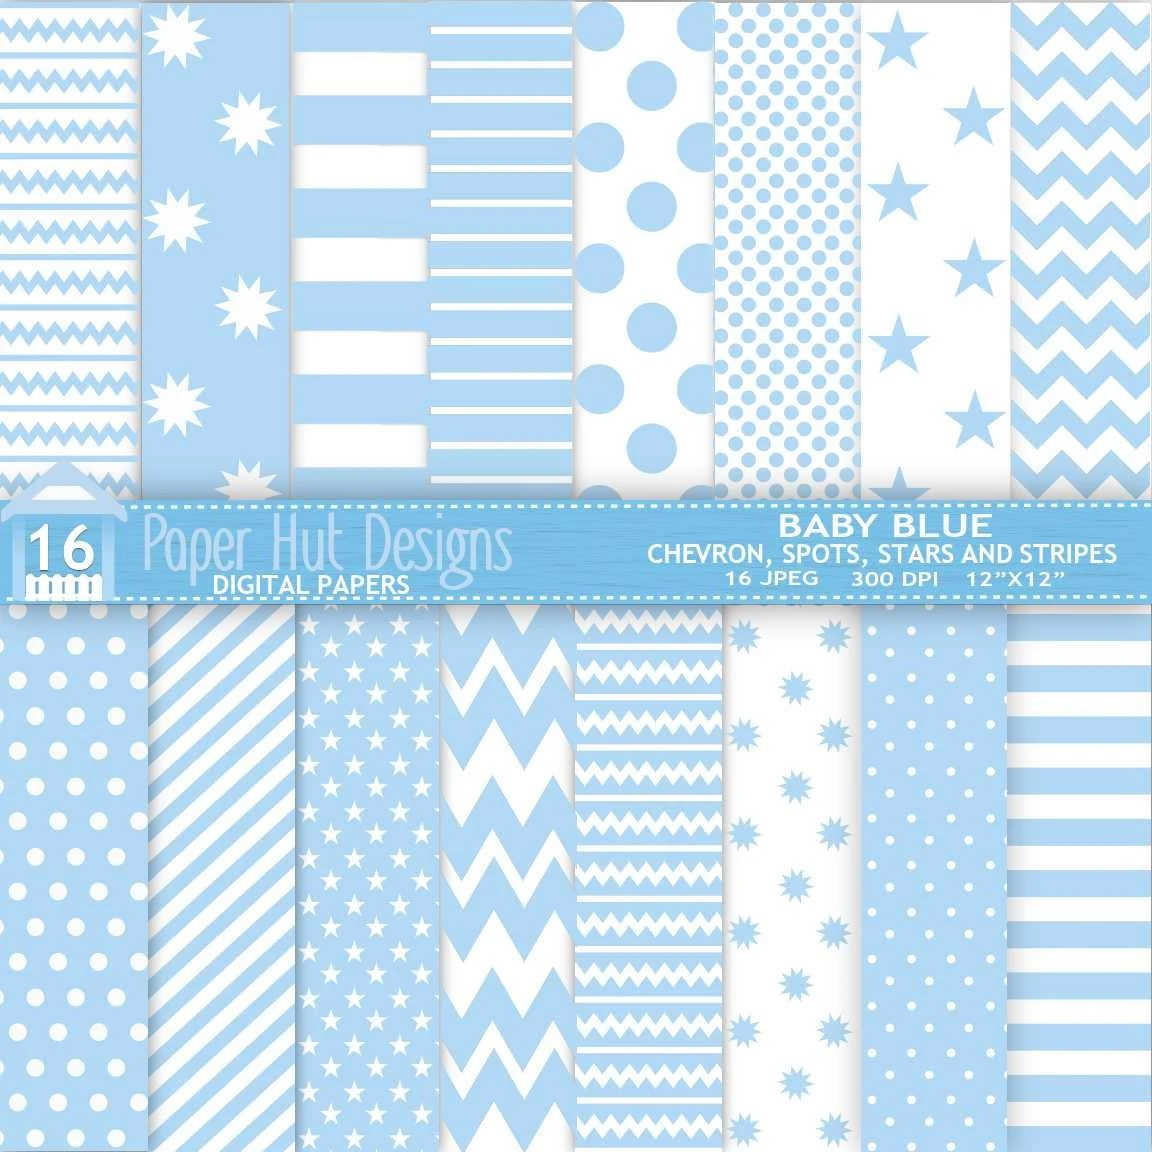 Baby Blue Digital Papers Baby Shower Chevron Spots Stars